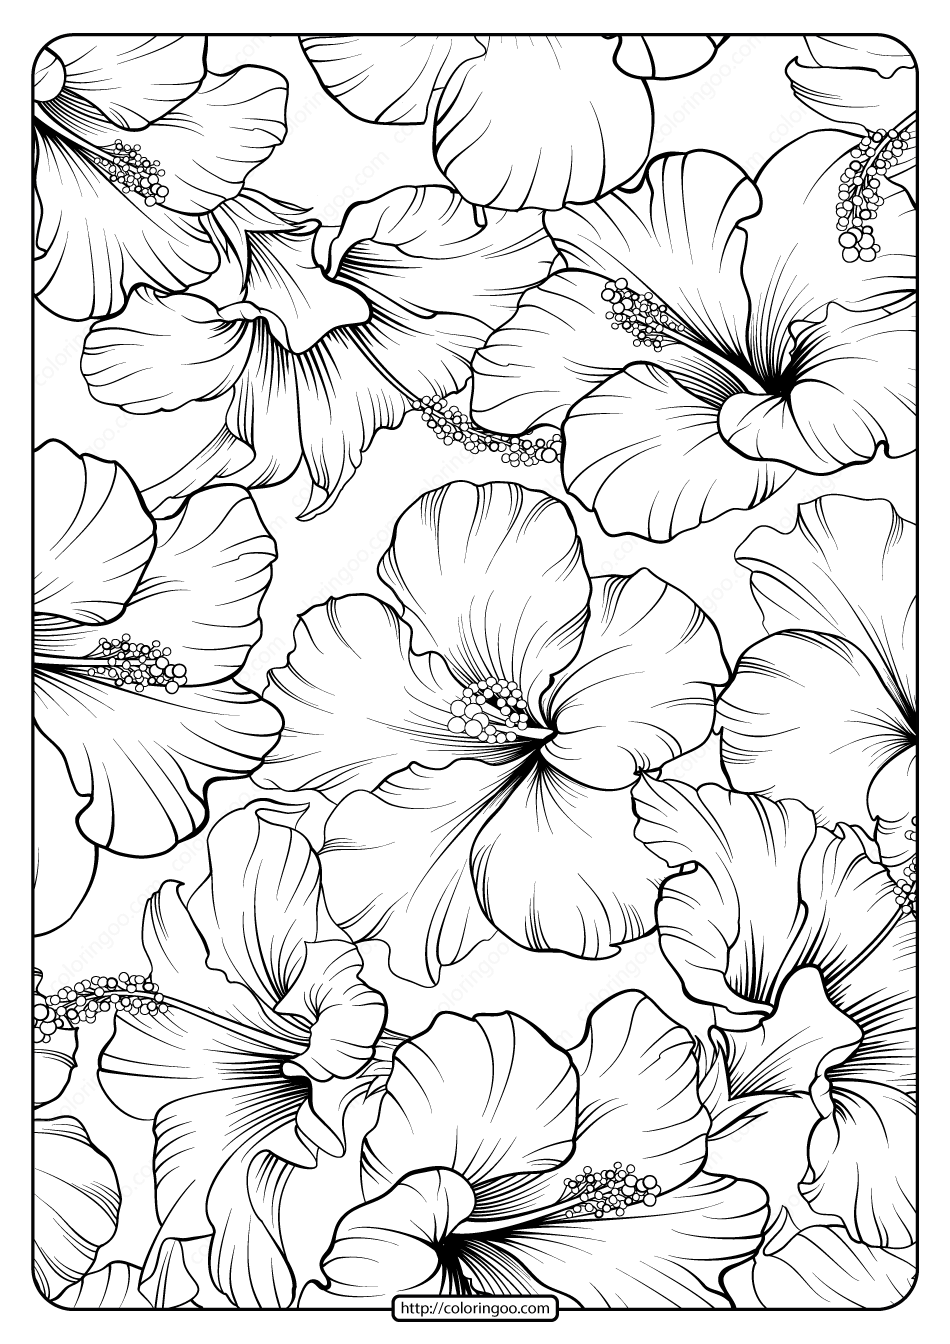 High quality free printable pdf coloring, drawing, painting pages and books for adults...